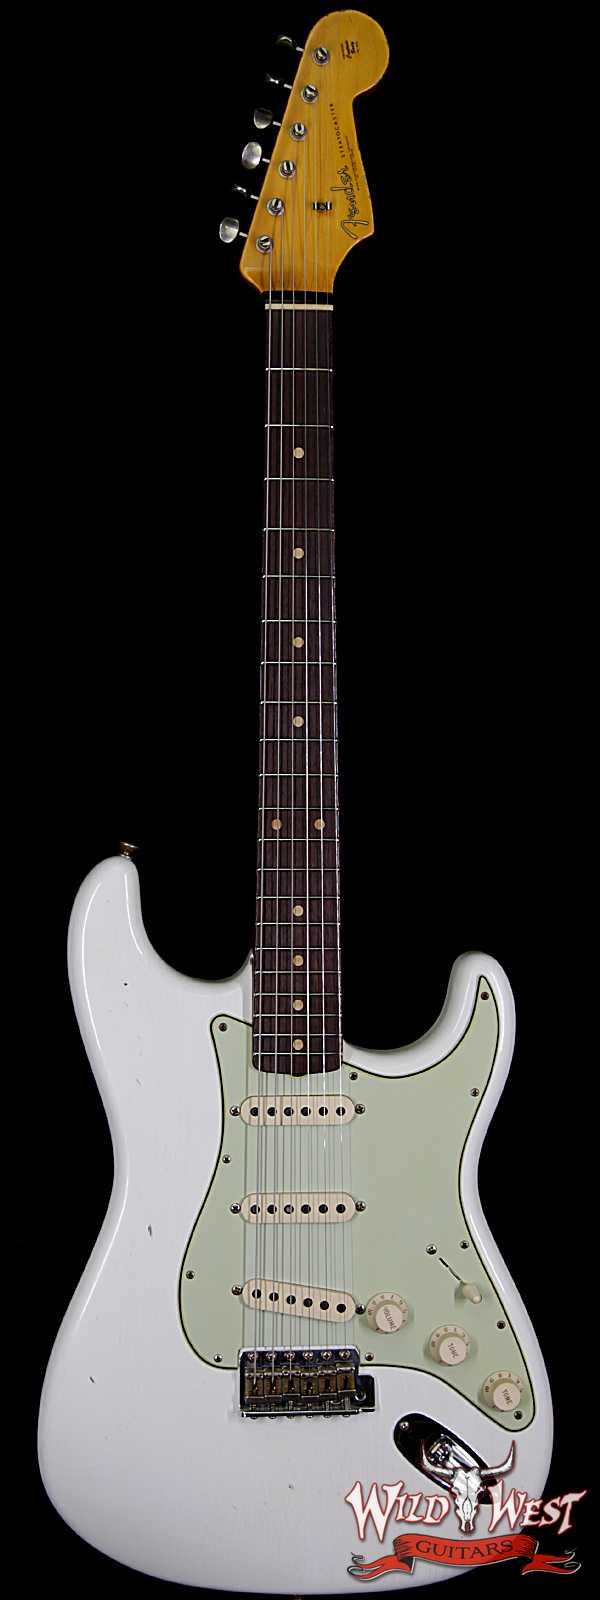 Fender Custom Shop 1961 Stratocaster Jouneyman Relic with Dirty Neck Slab Rosewood Board Olympic White